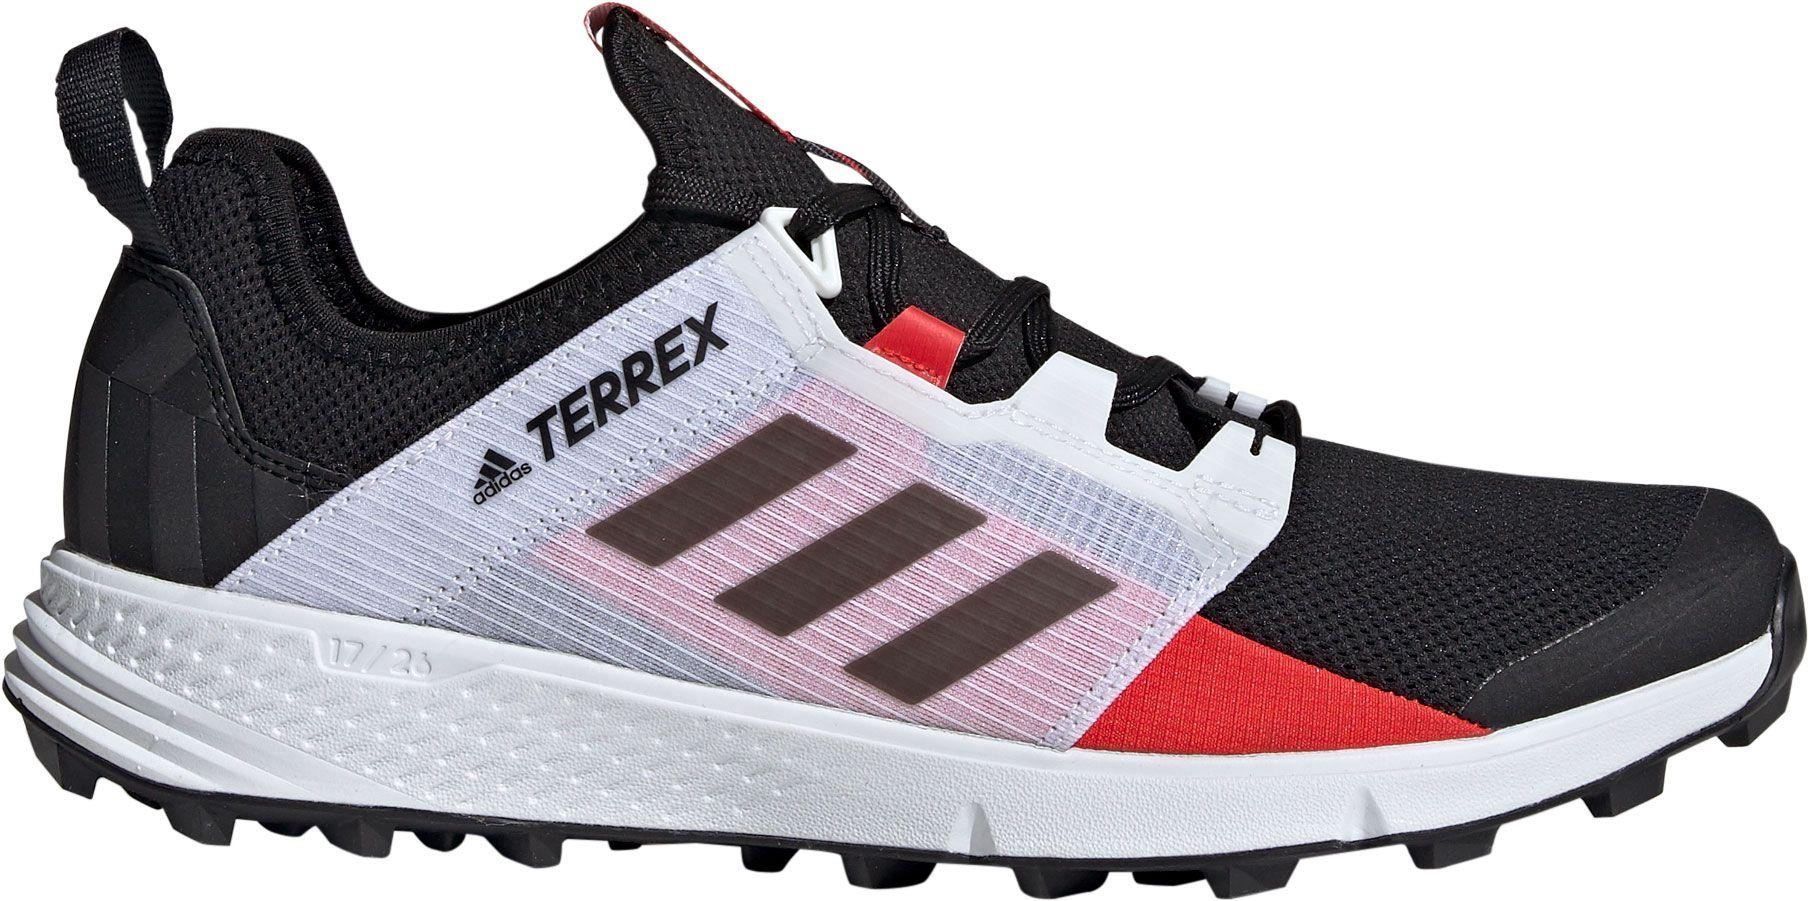 7a5b72f557f Adidas Black Terrex Agravic Speed Trail Running Shoes for men